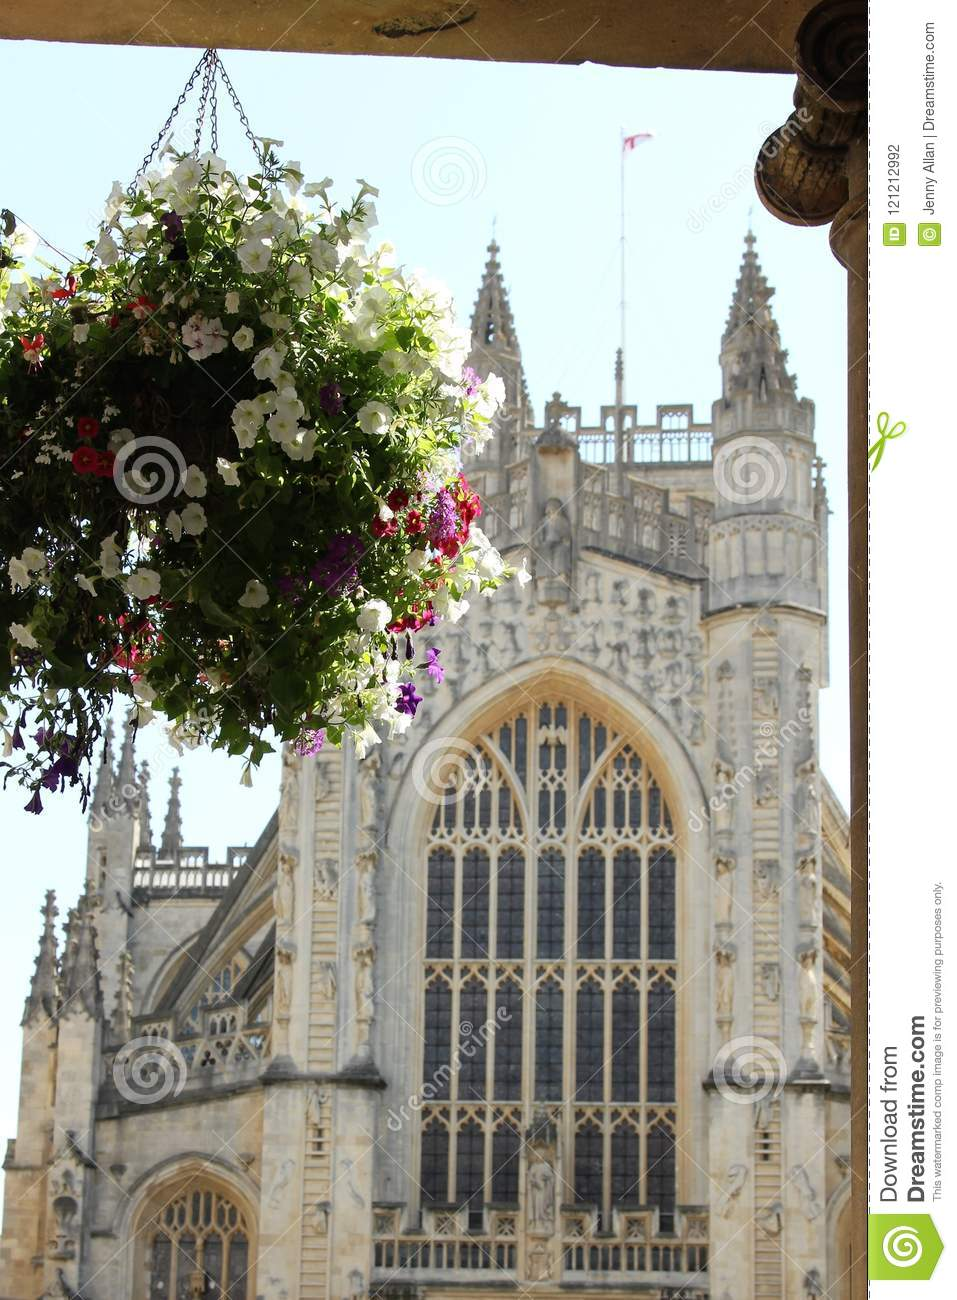 534e388296bc View of Bath Abbey with hanging basket of flowers, Bath, England. More  similar stock images